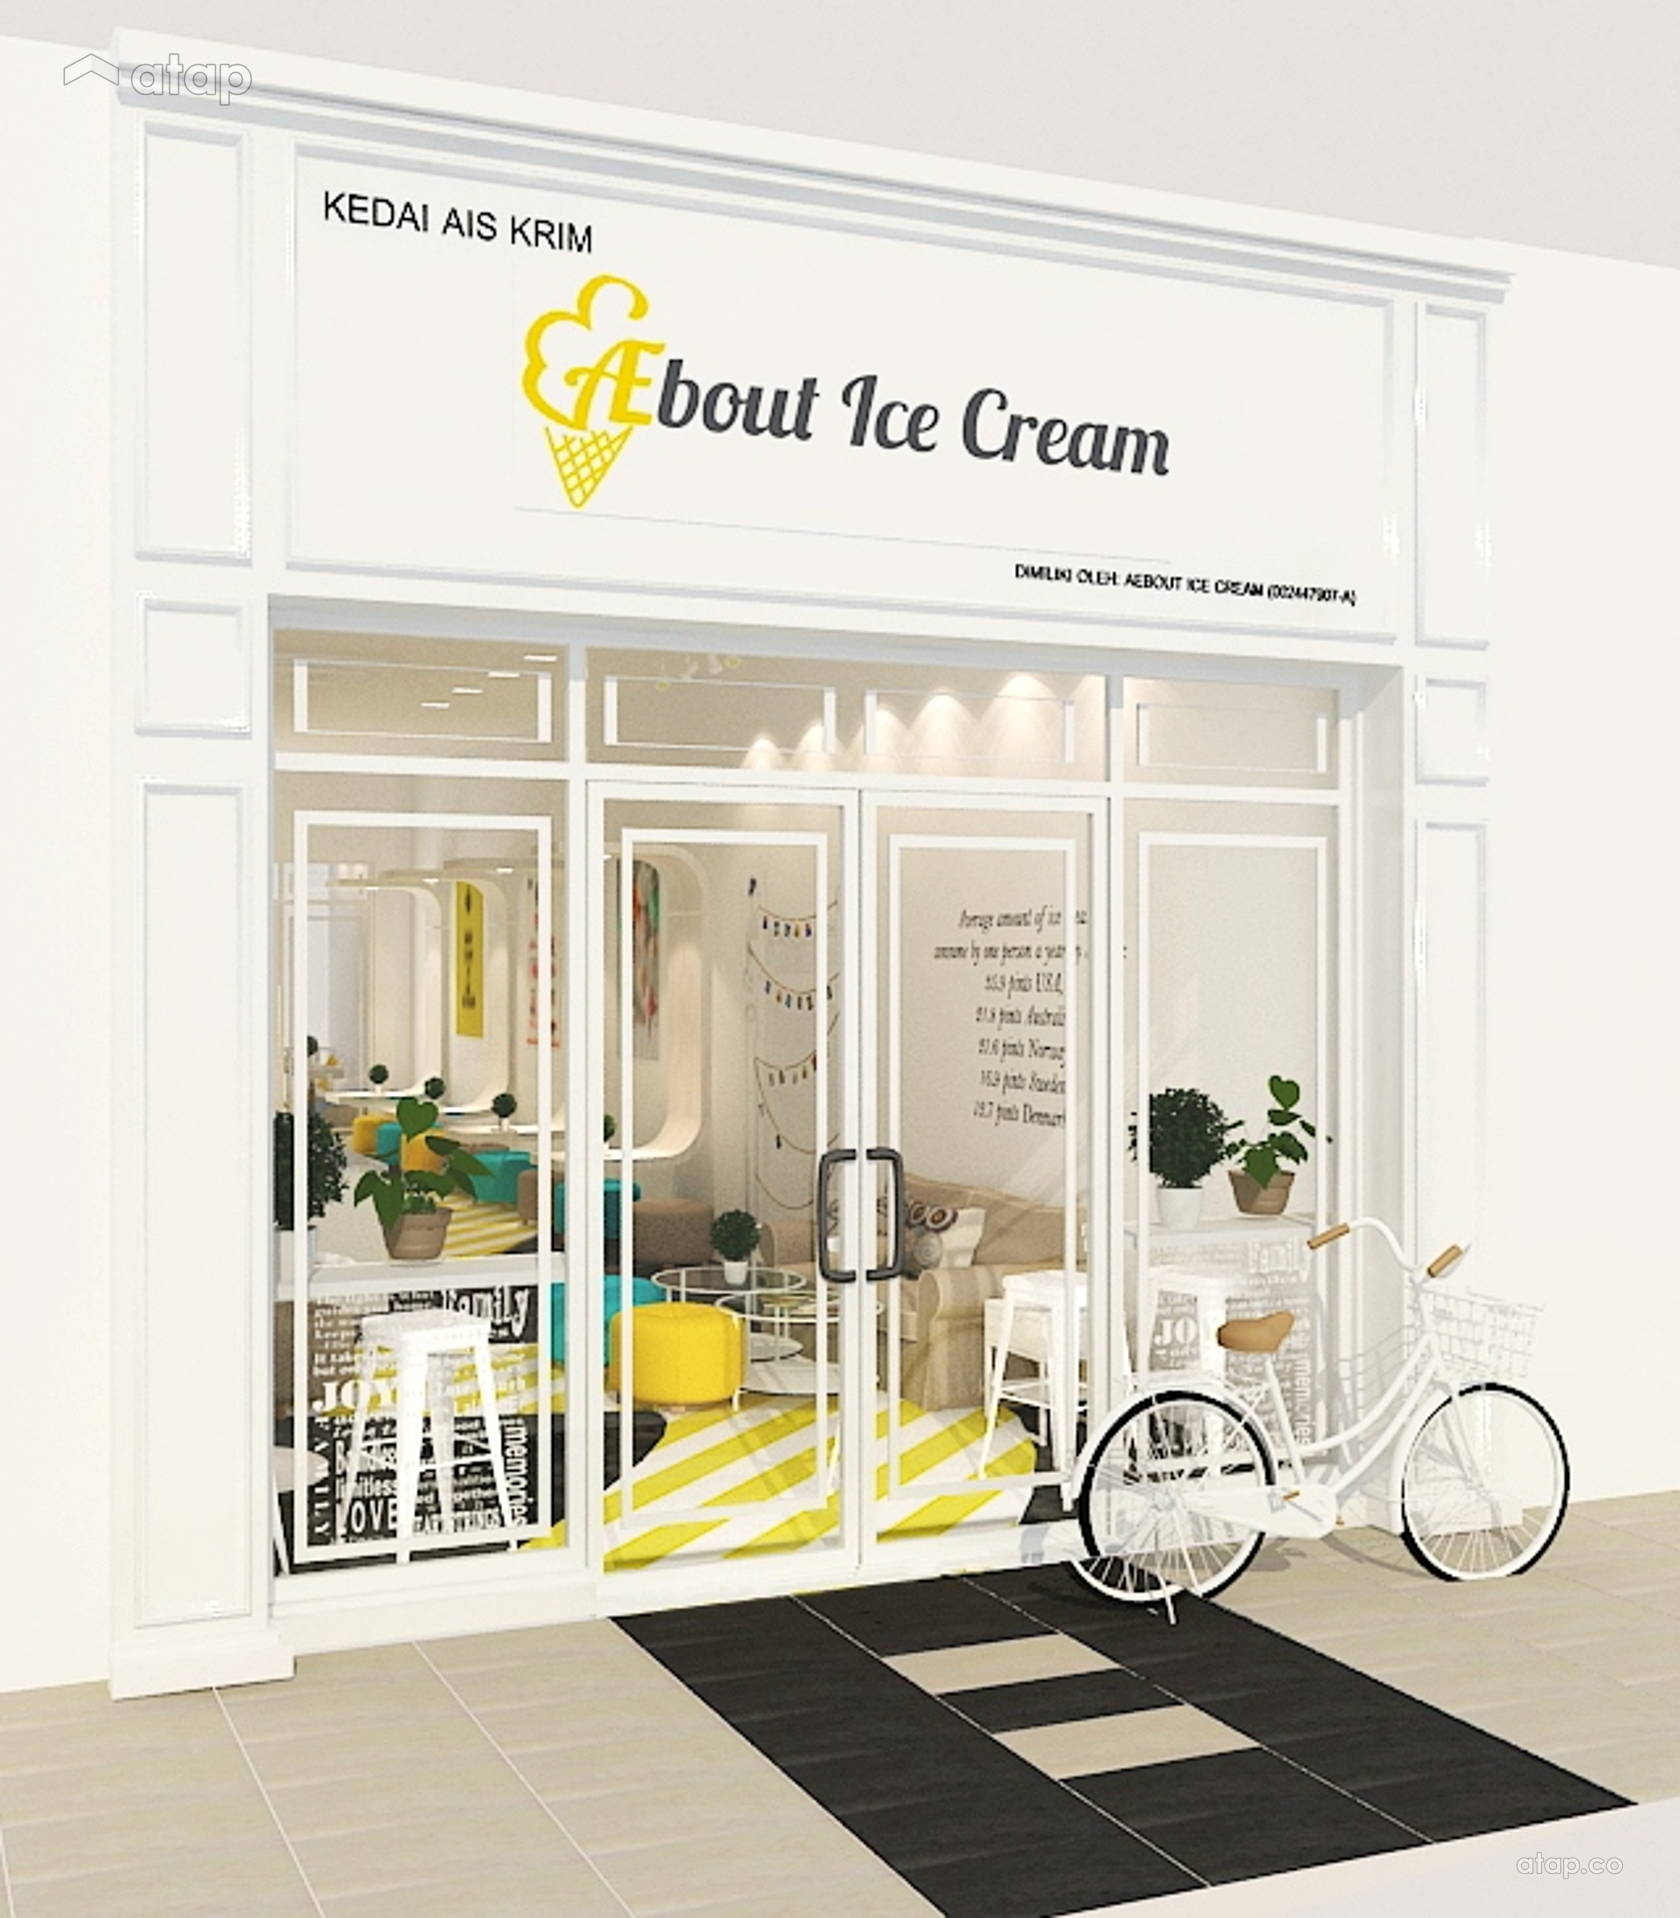 Aebout Ice Cream Shop Interior Design Renovation Ideas Photos And